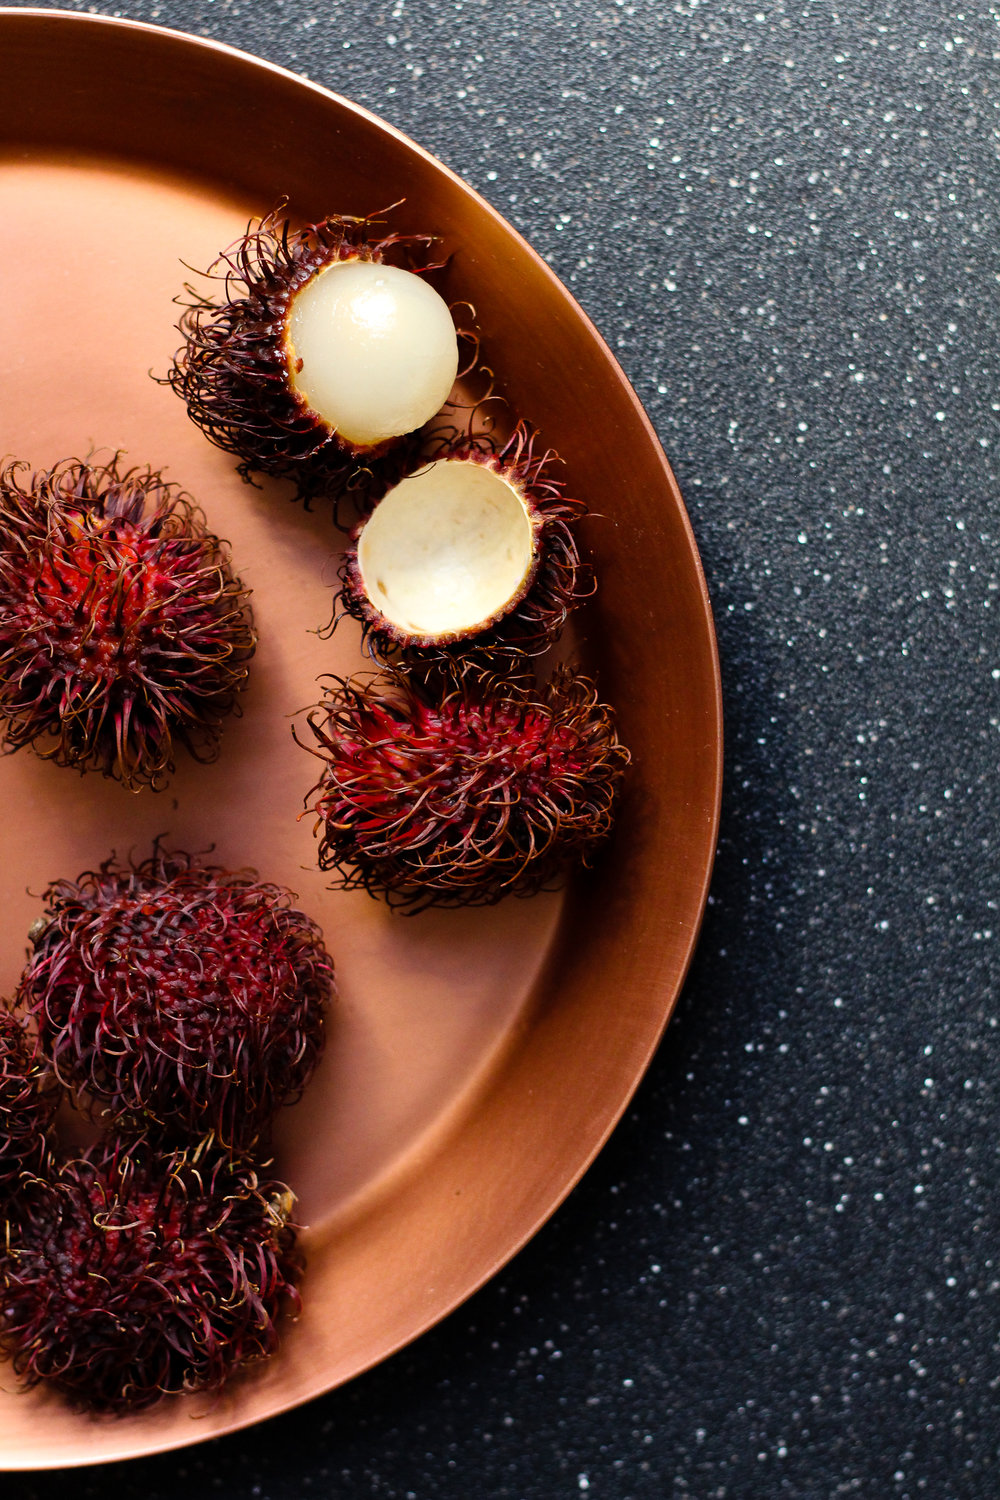 Rambutan Fruit - Put Your Money Where Your Politics Are